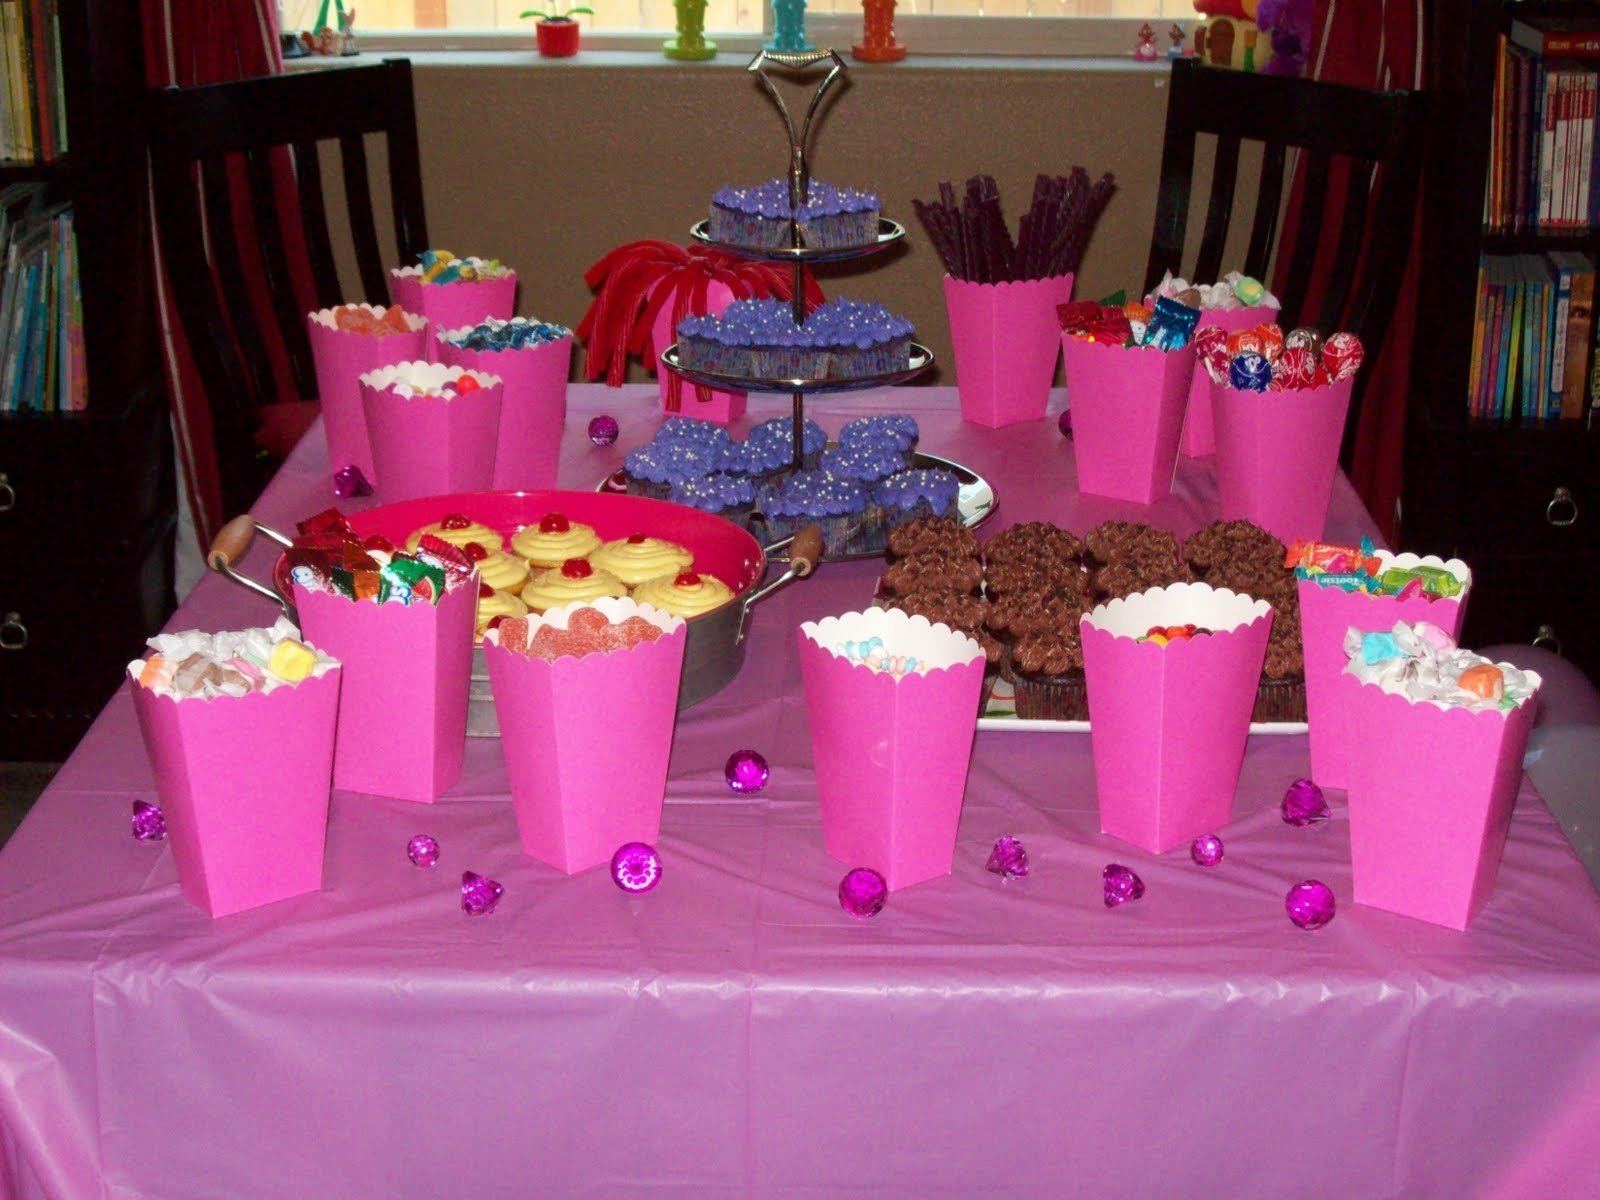 10 Lovely Unique Sweet 16 Party Ideas aprils homemaking sweet sixteen party 11 2020